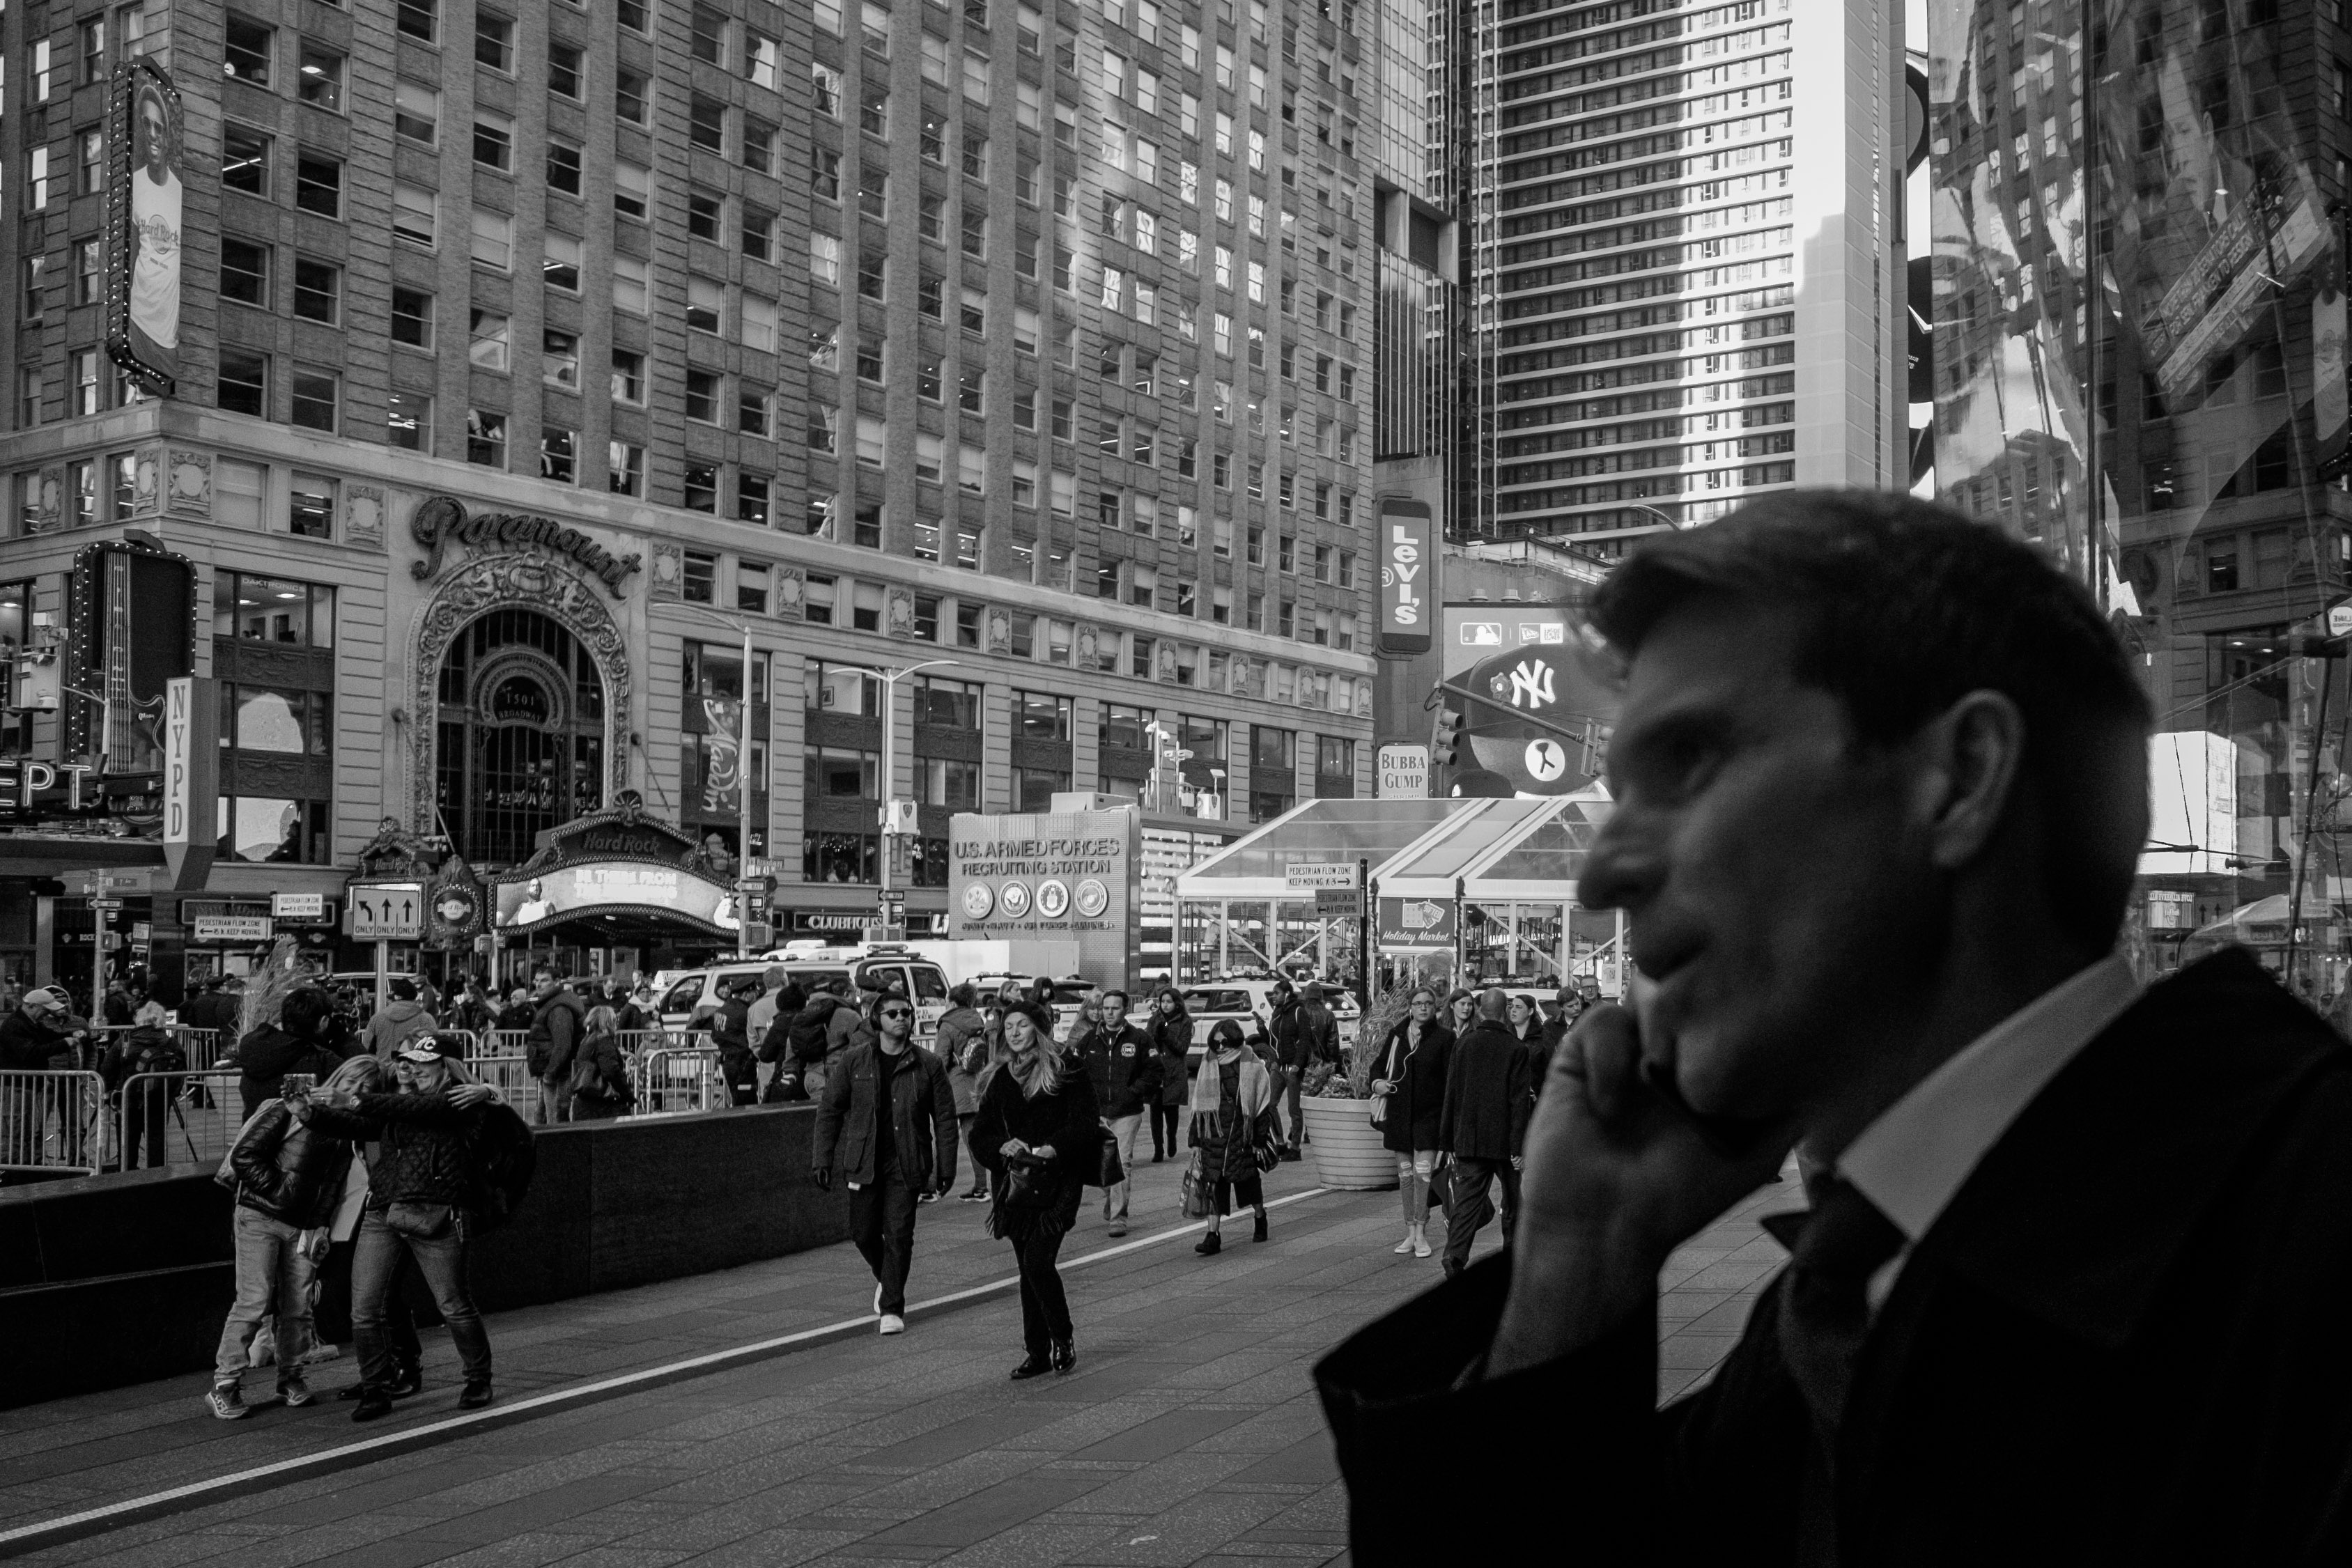 michael-in-times-square-black-and-white-photography